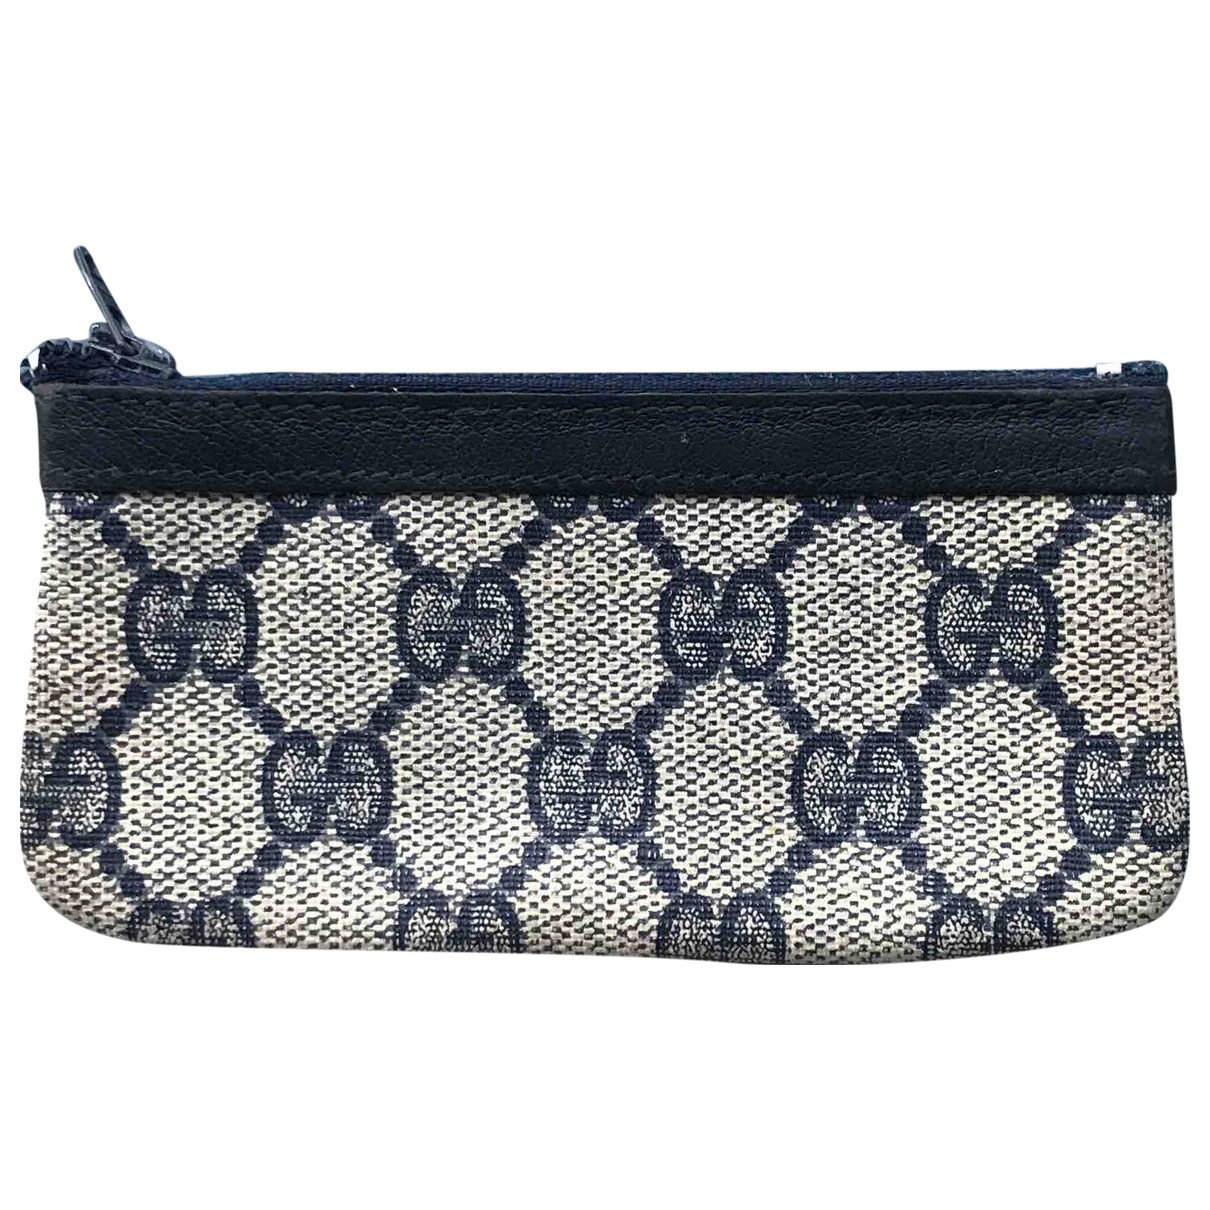 Gucci N Cotton Small bag, wallet & cases for Men N